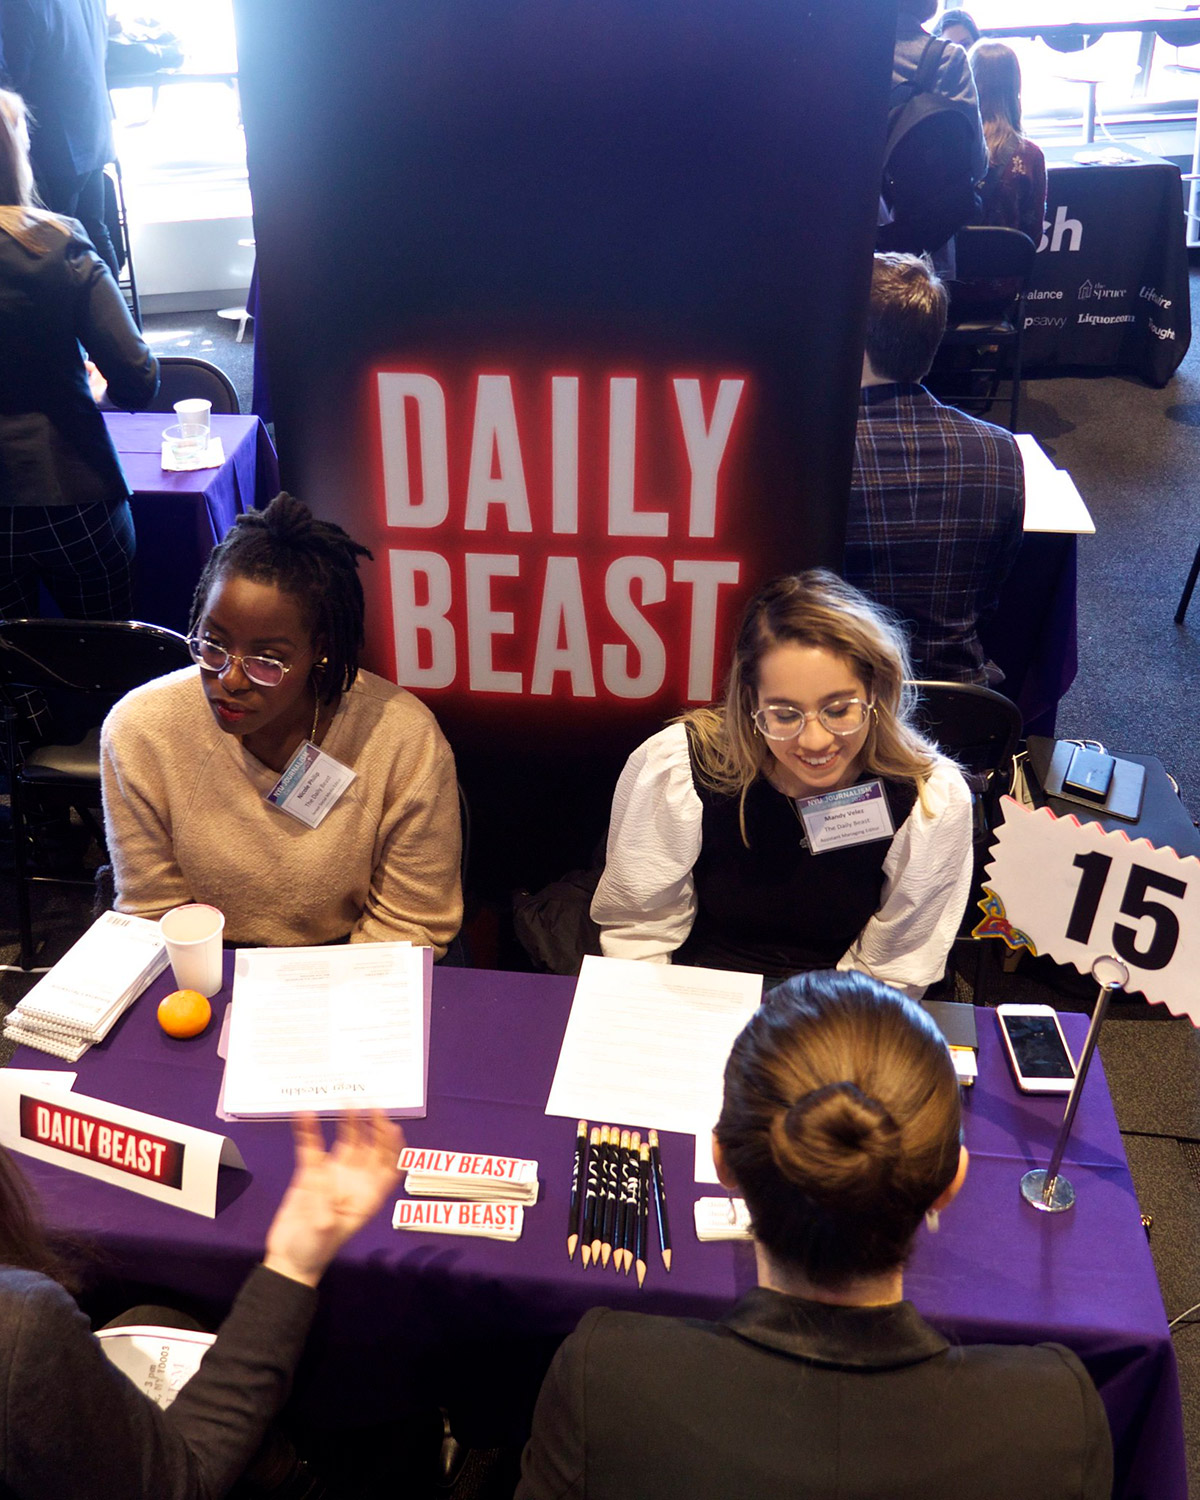 People at a Daily Beast booth at Career Fair 2020